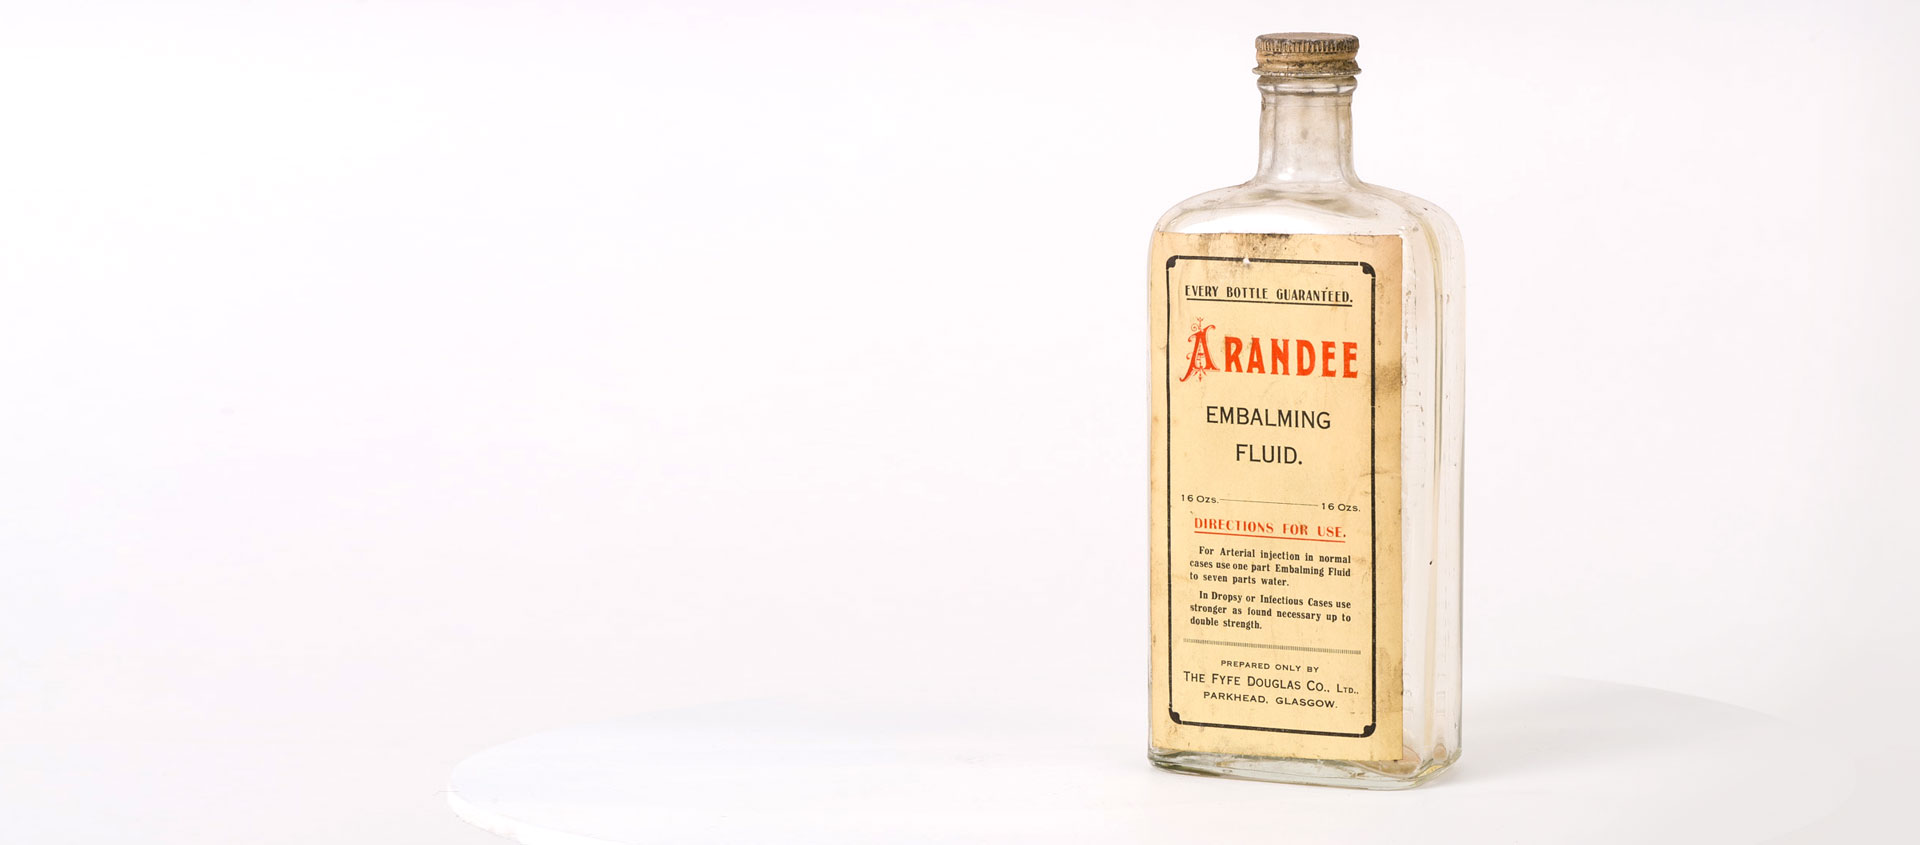 Collection Update – Embalming Fluid Bottle